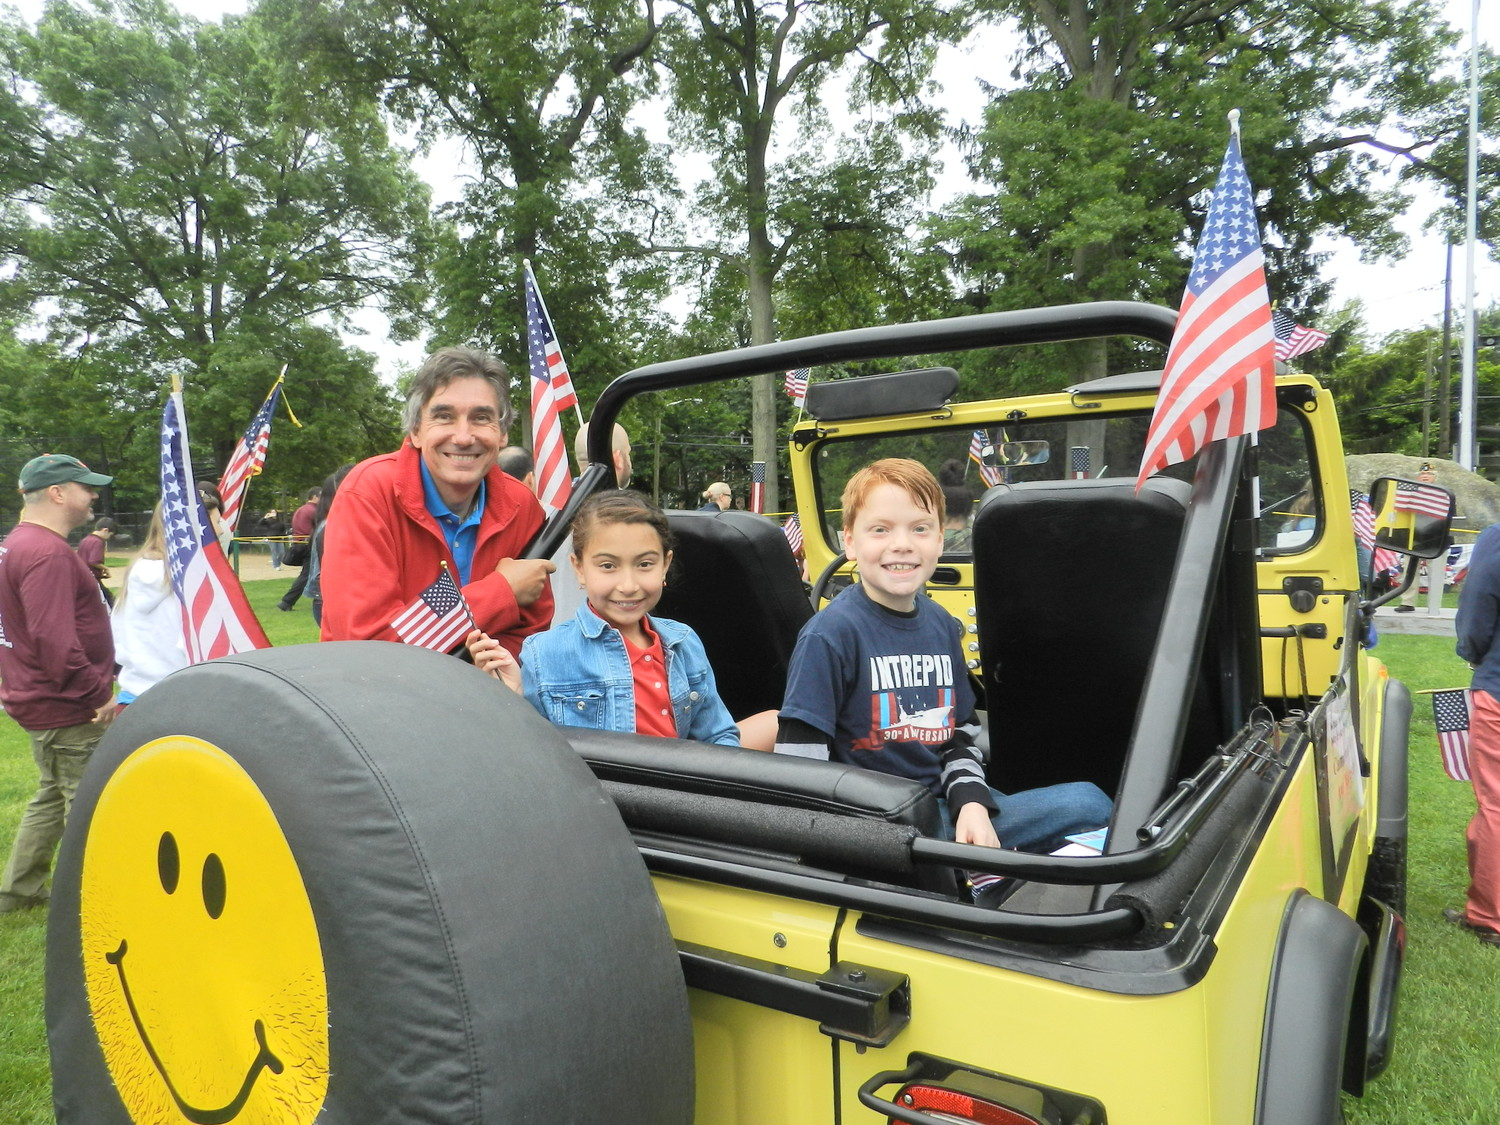 Kevin Horton gave Sea Cliff fourth-graders Ava Varasano and Cameron Miller a lift in his bright yellow Jeep. The 10-year-olds were selected to read their essays at the closing ceremony, which detailed what Memorial Day means to them.